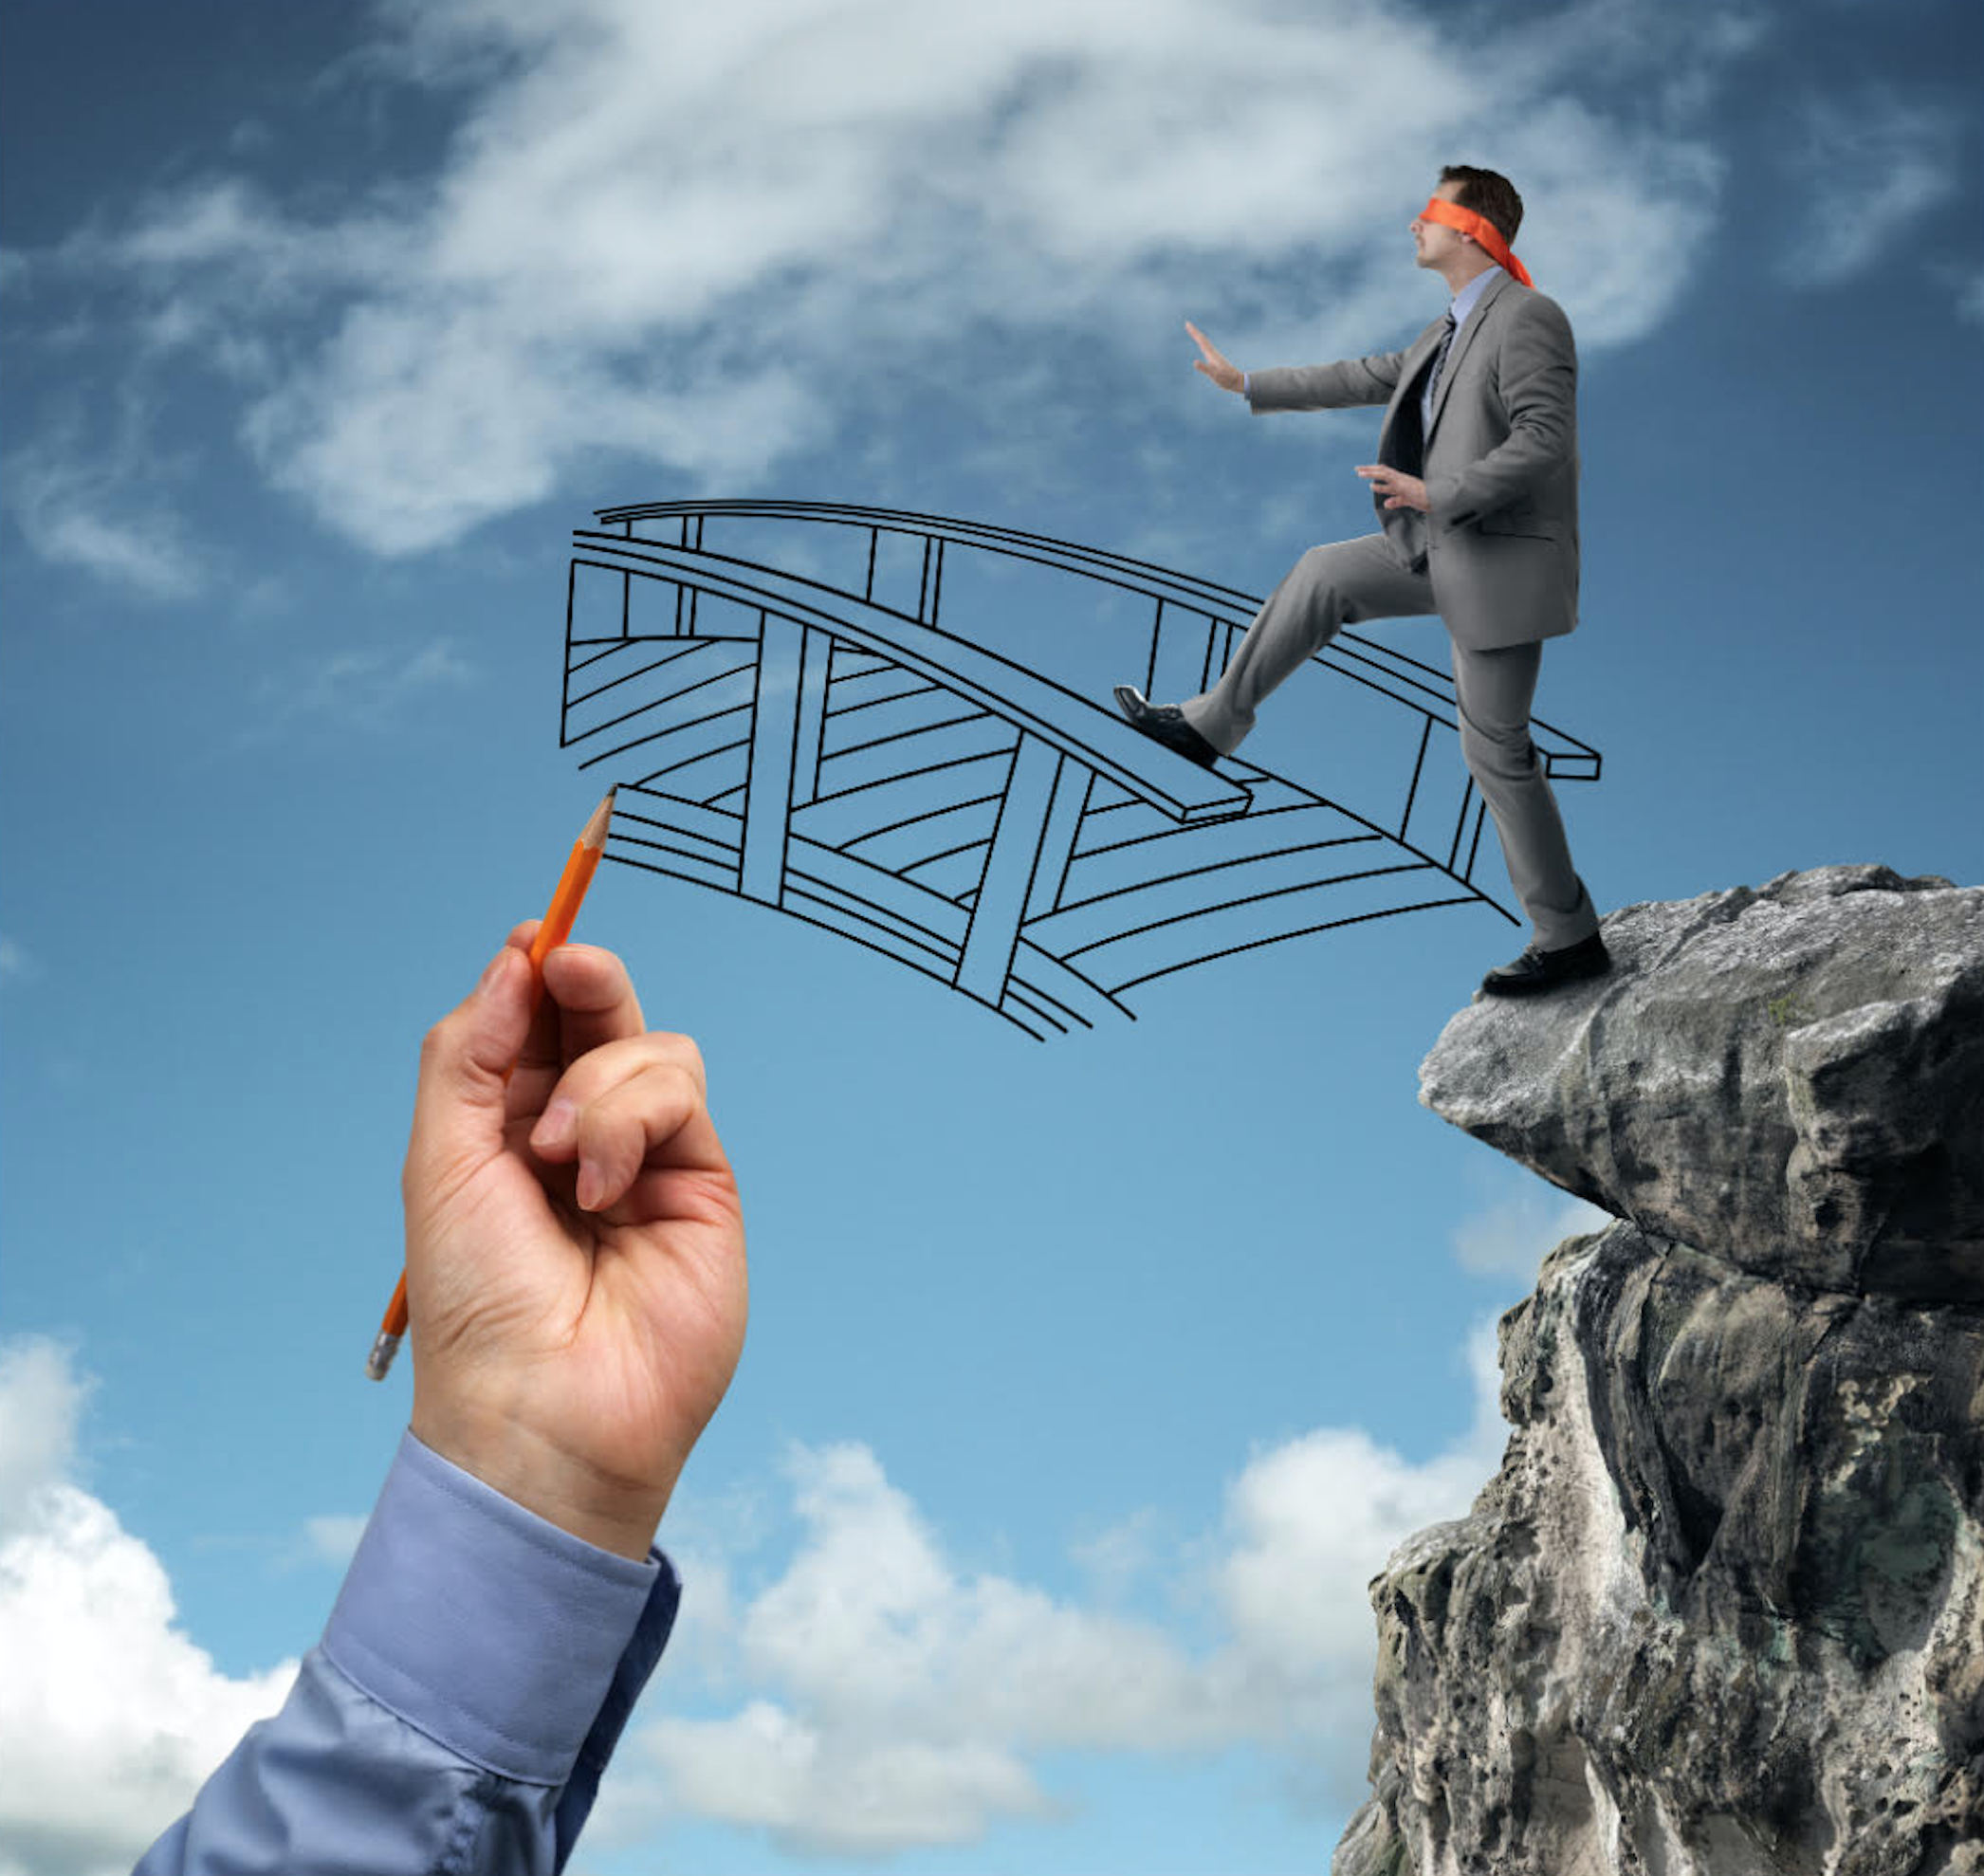 Three Things Business Owners Need to Know About Risk Mitigation